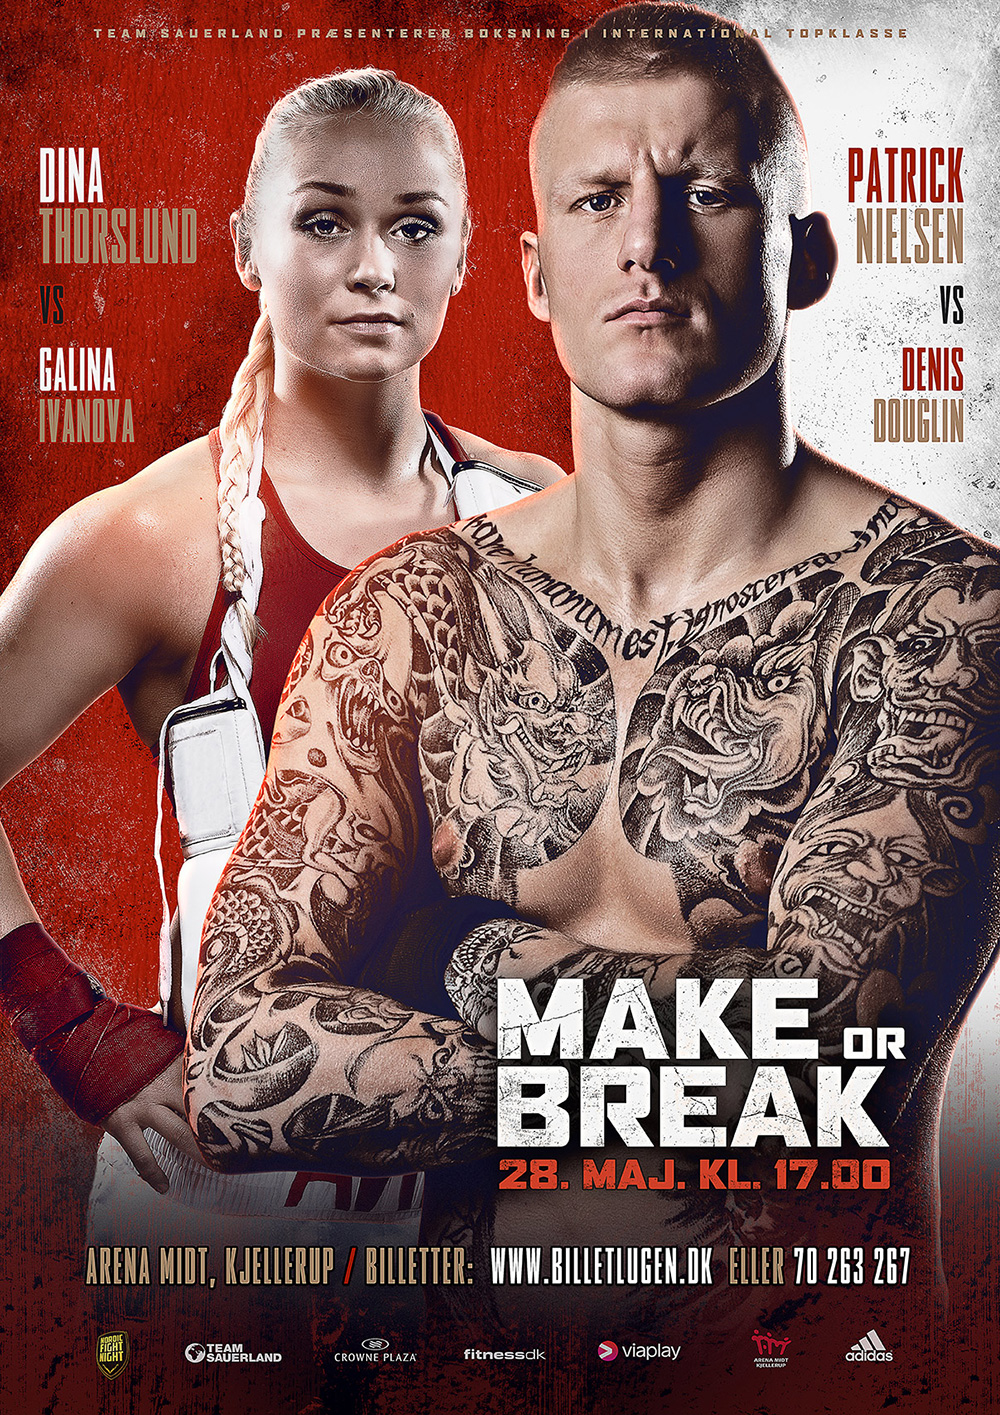 danish fighter patrick nielsen and dina thorslund fight poster